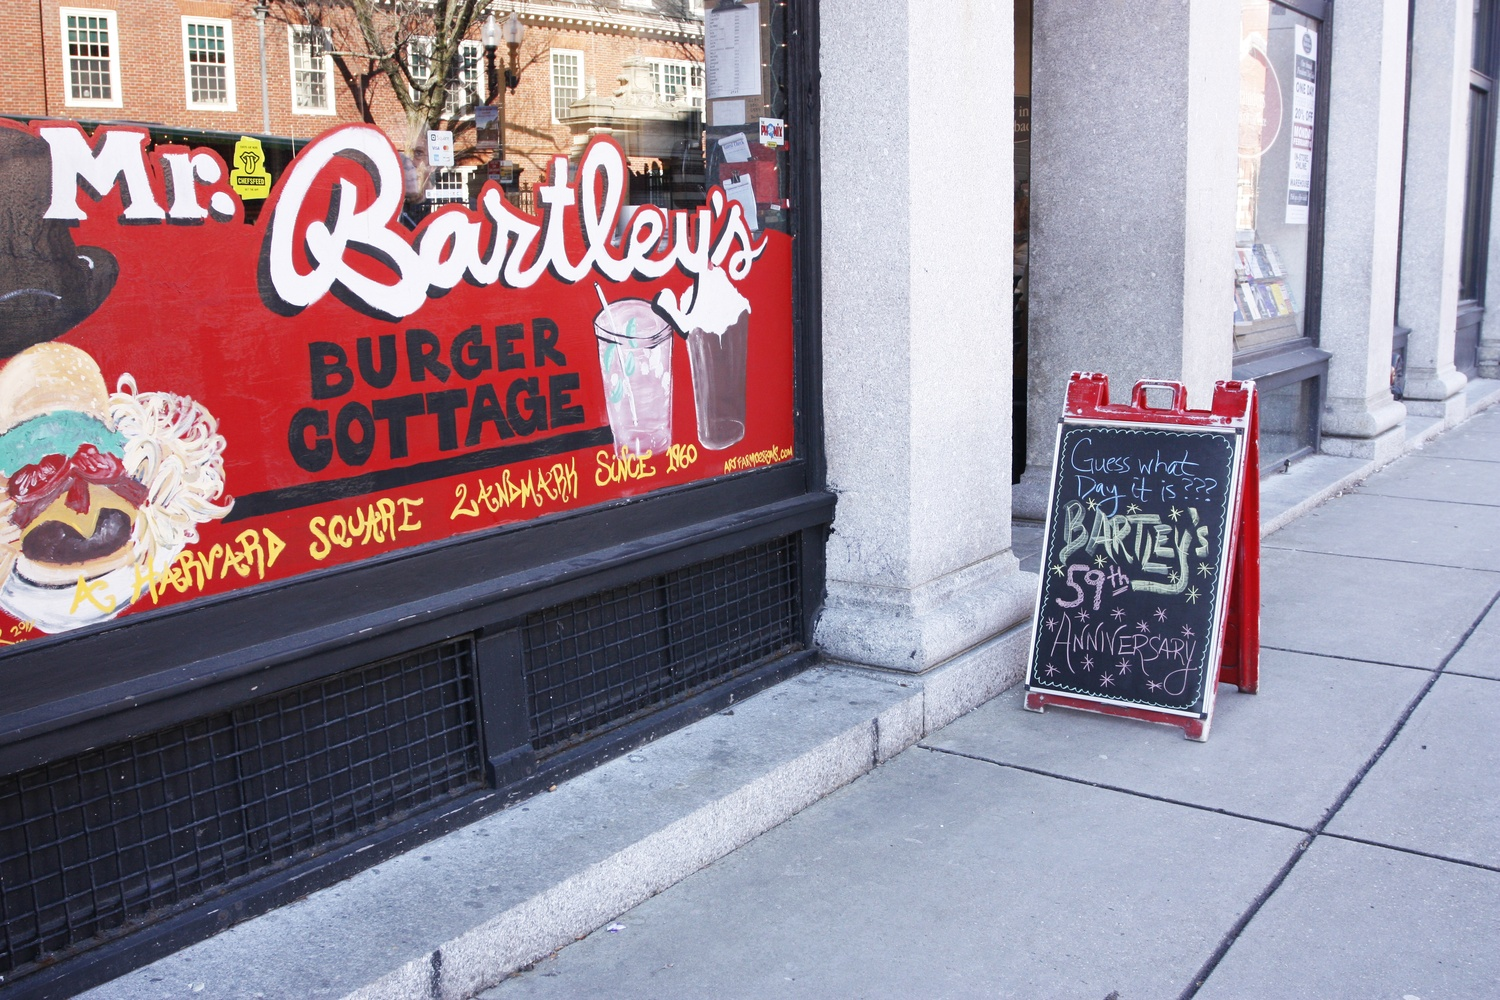 The exterior of Mr. Bartley's Burger Cottage.